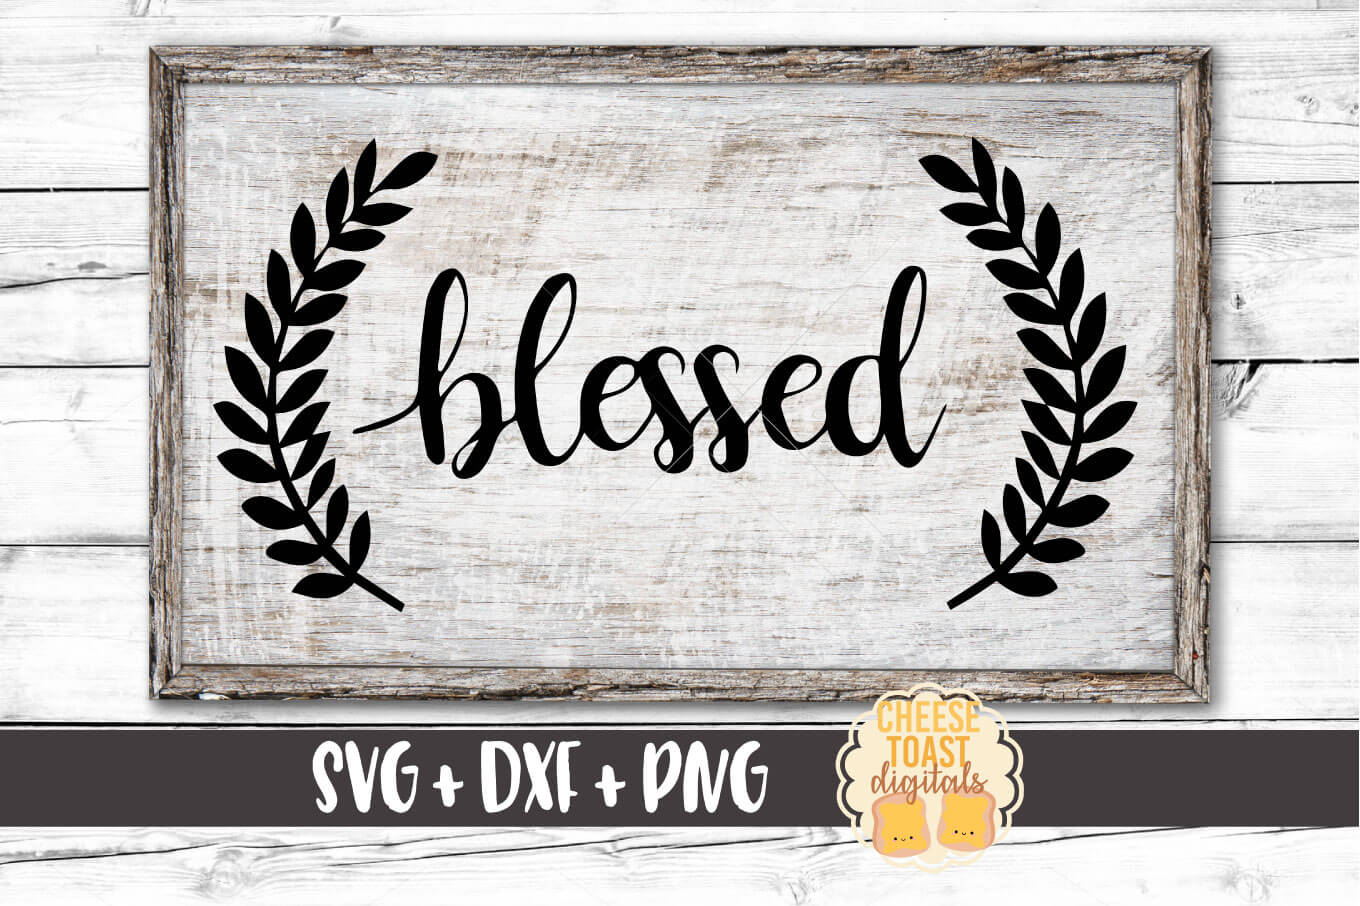 Blessed with Laurels - SVG, PNG, DXF